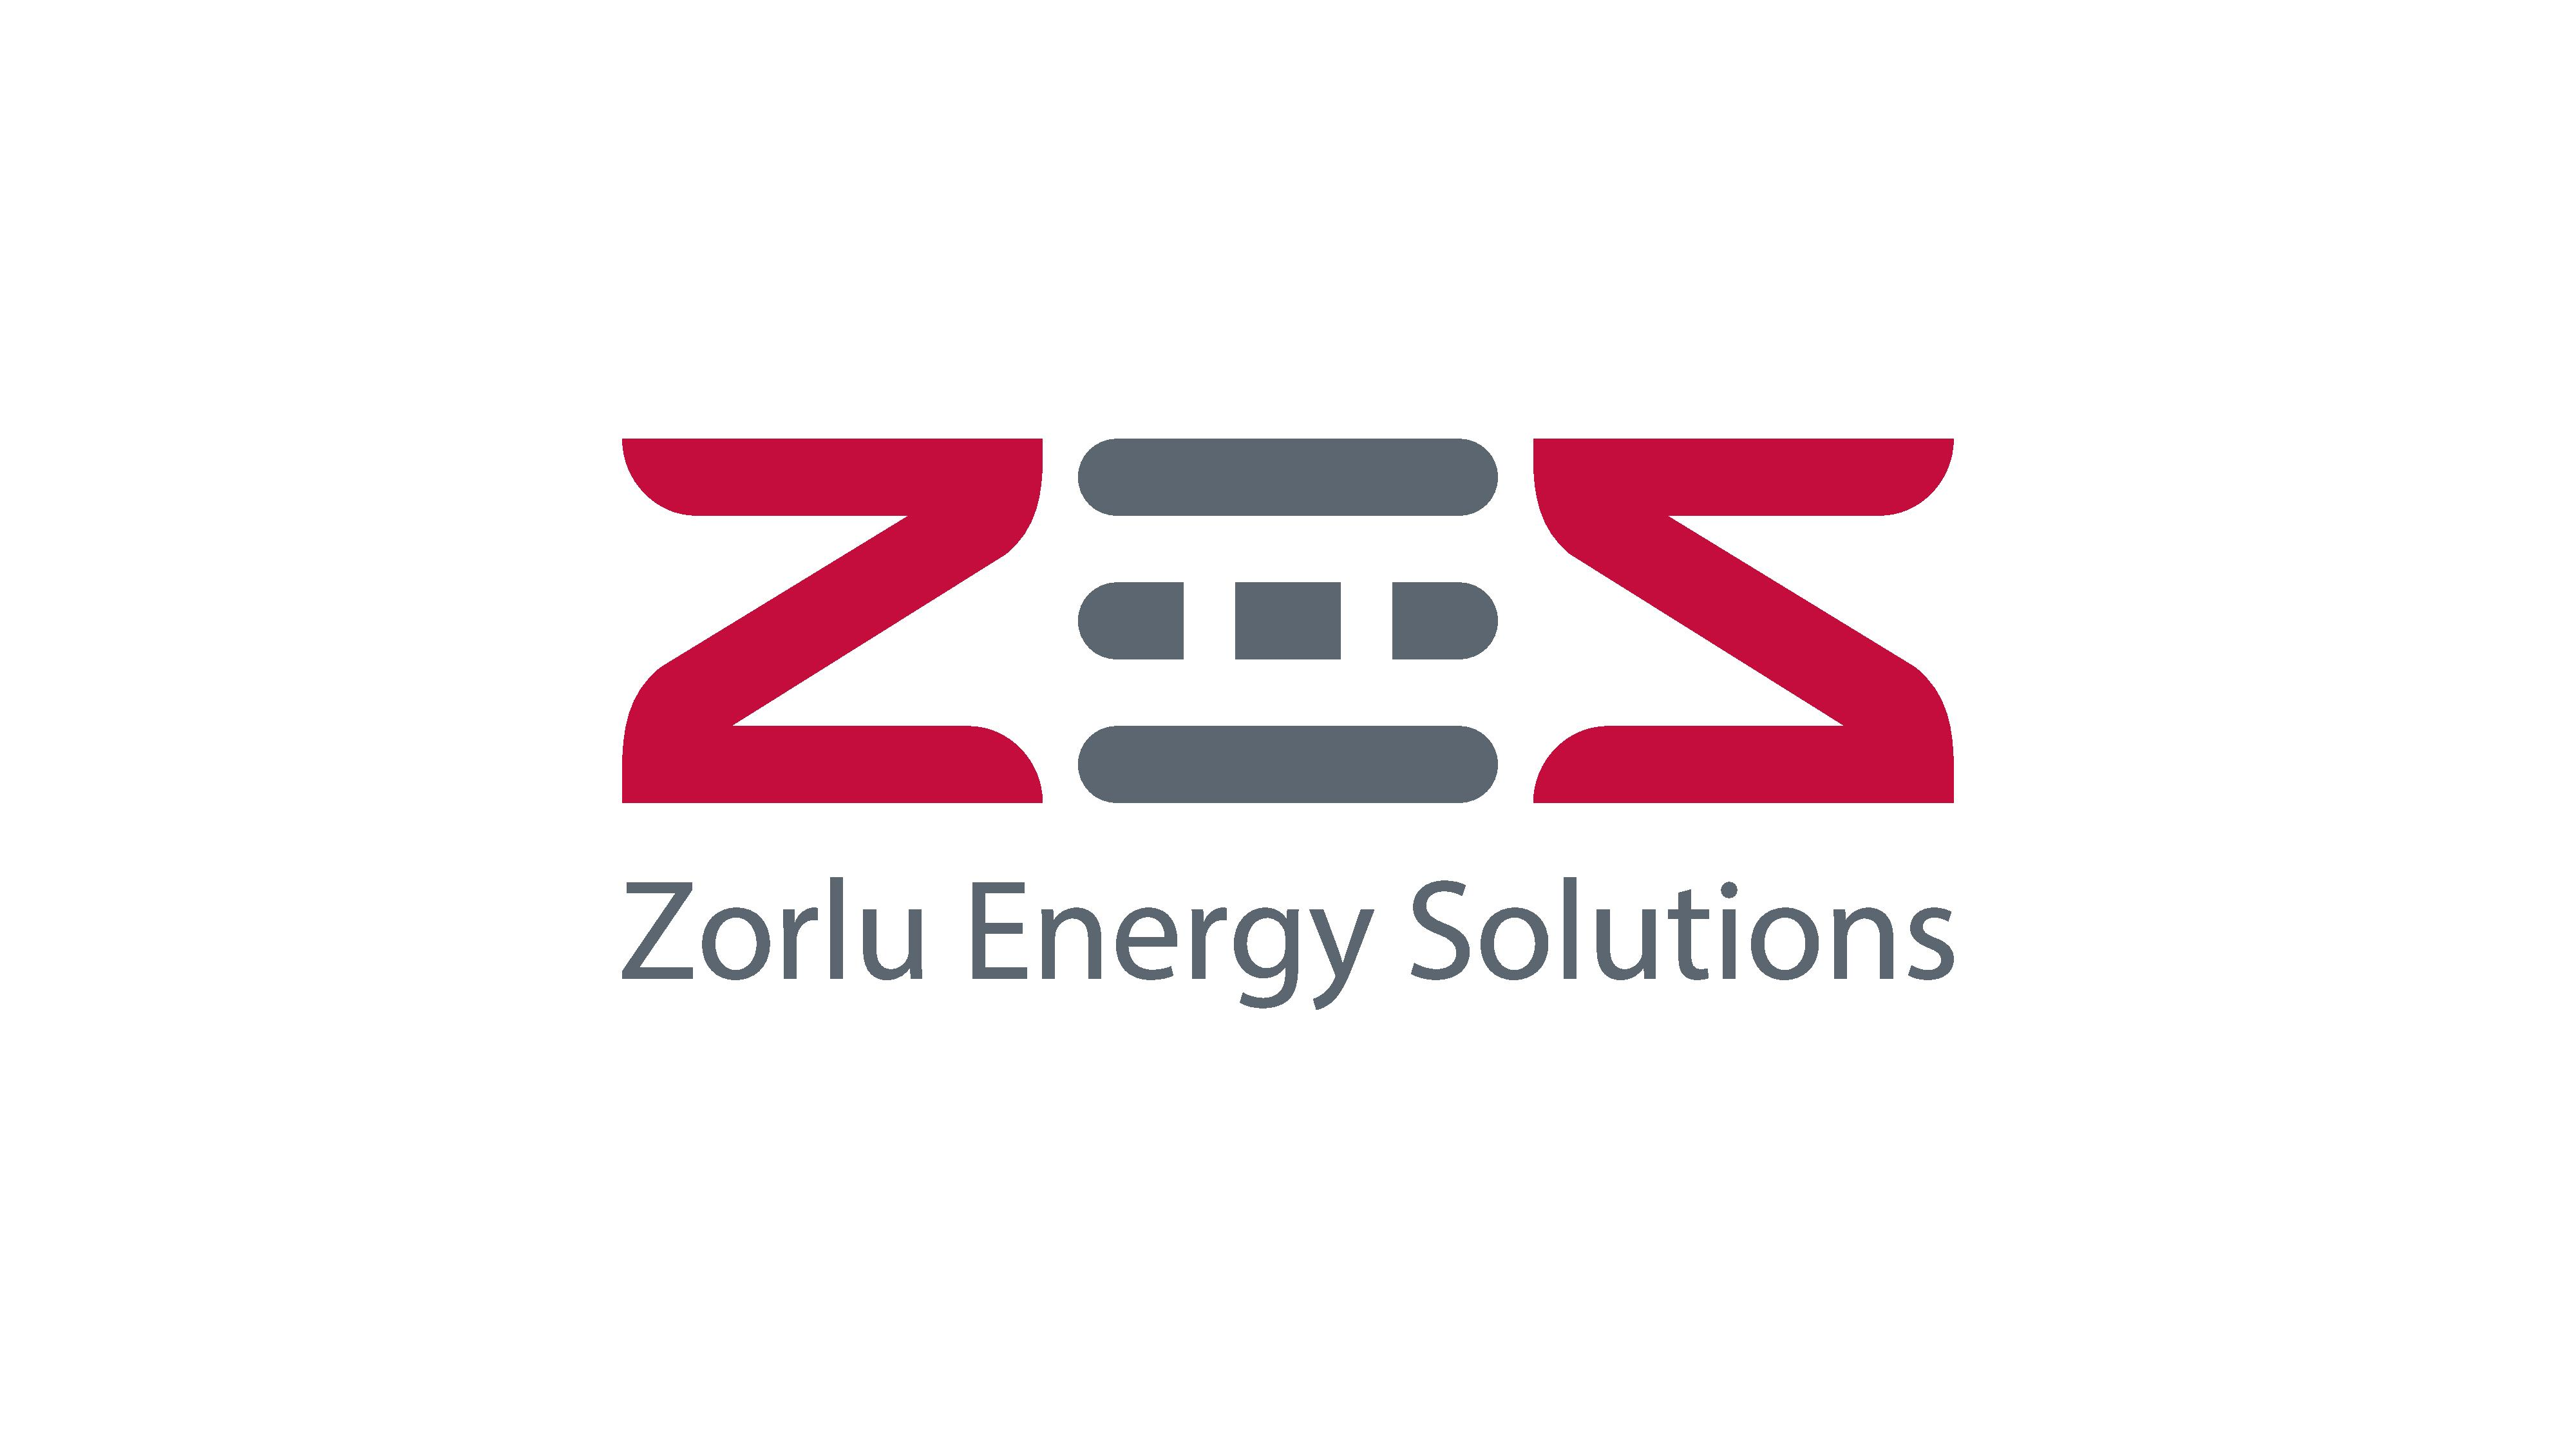 Charge card logo of Zorlu Energy Solutions (ZES)